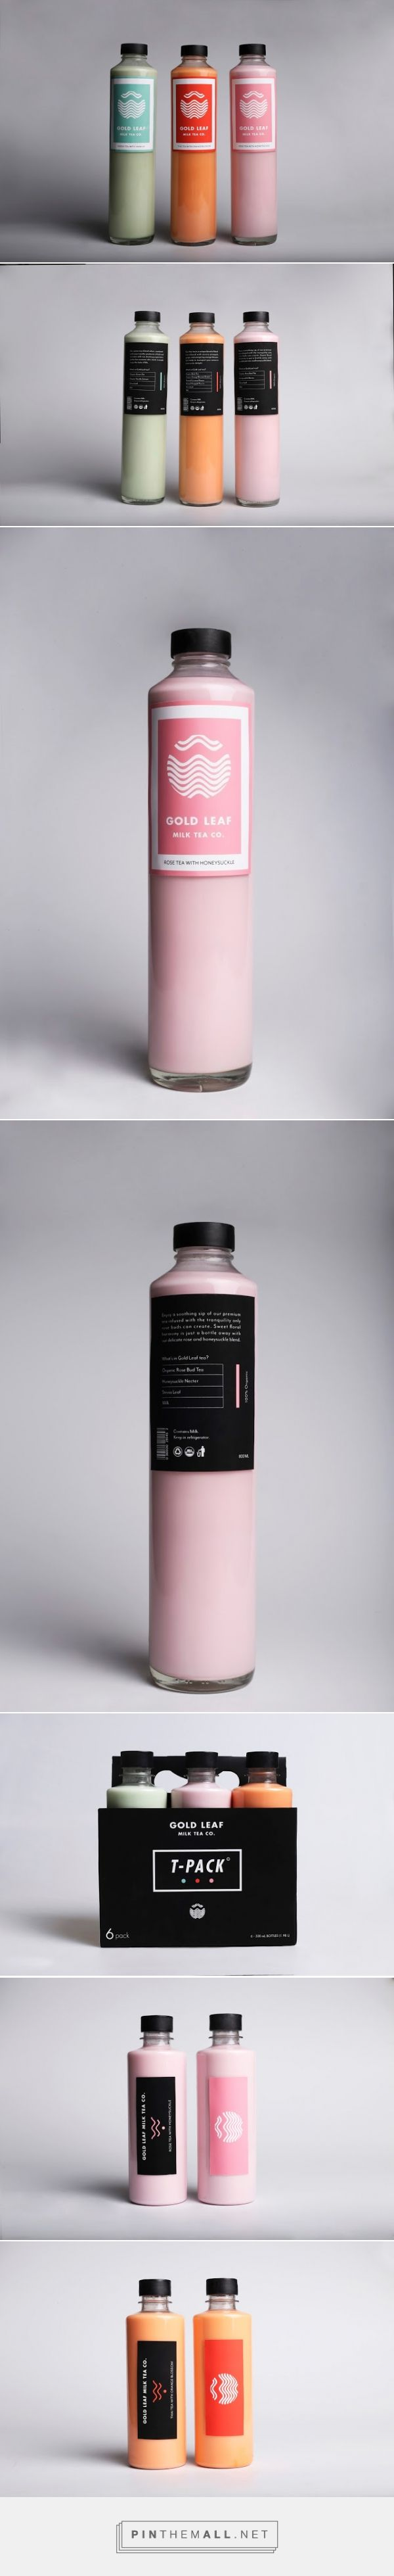 GoldLeaf Milk Tea Co. (Student Project) packaging design by Adam Heisig curated by Packaging Diva PD.  GoldLeaf Milk Tea Co. is reinventing the tea drinking experience with it's diverse blends of flavorful milk teas.